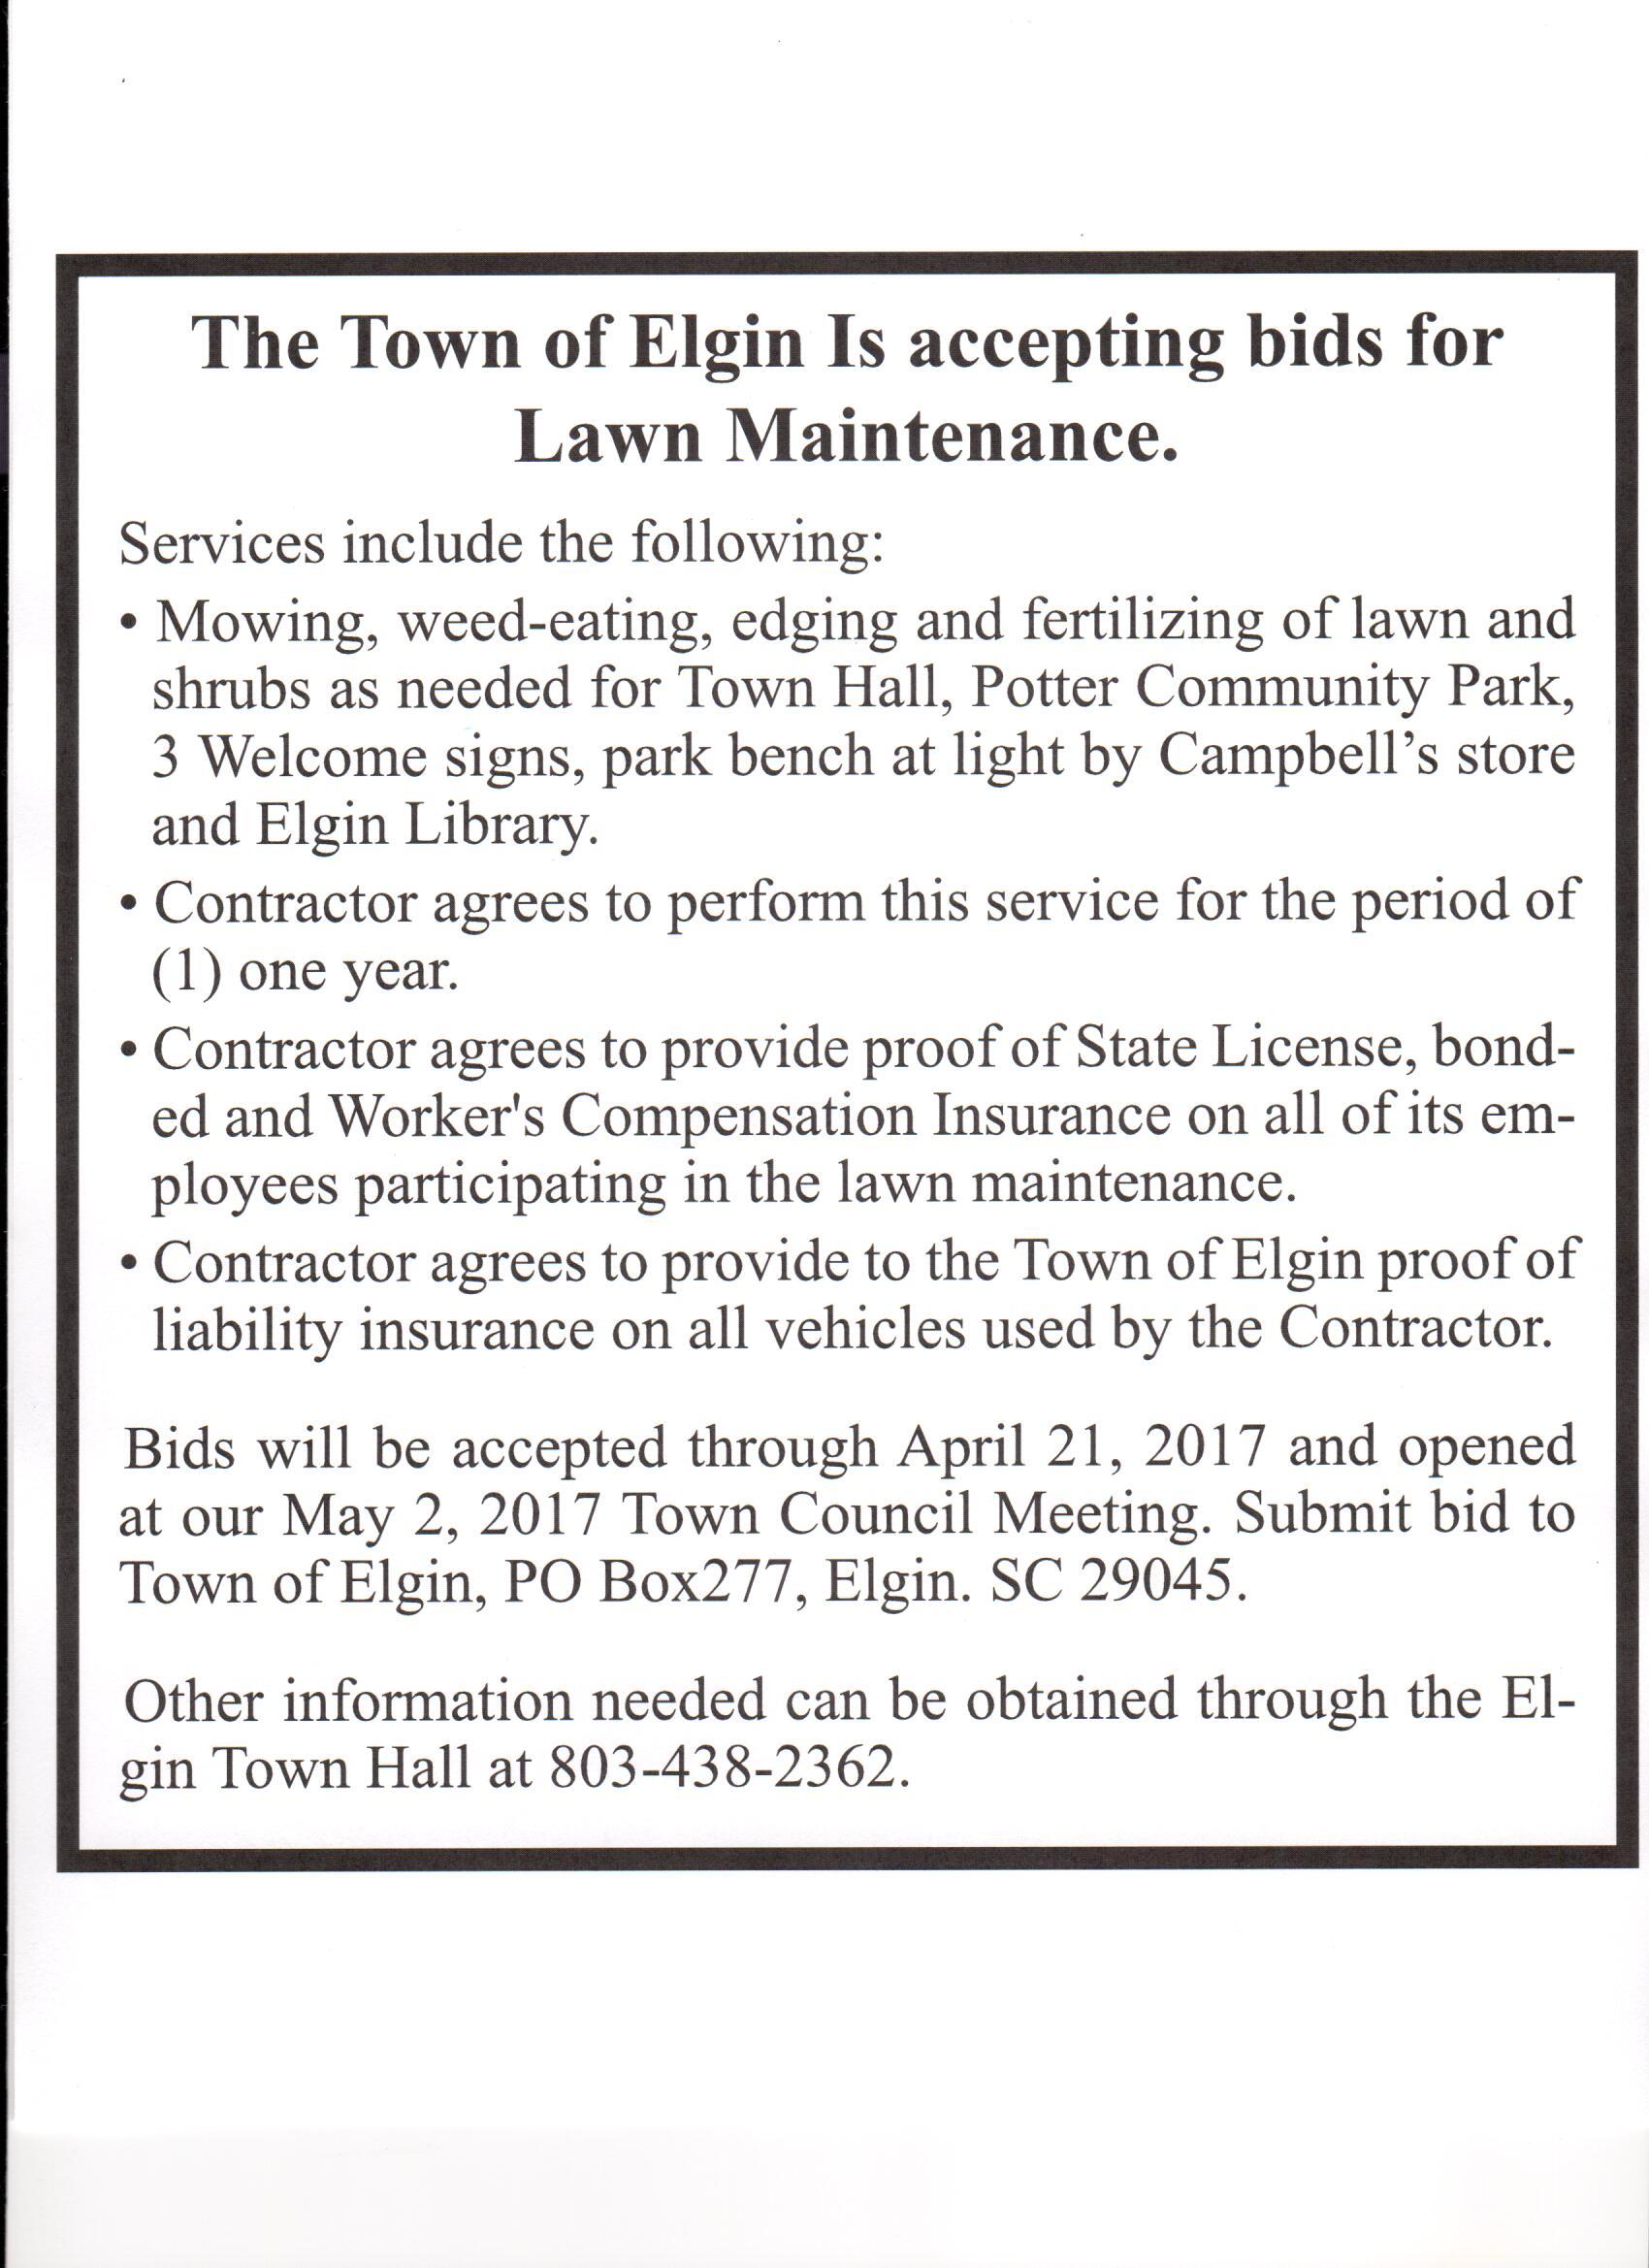 THE TOWN OF ELGIN IS ACCEPTING LANDSCAPING BIDS — Town of Elgin ...